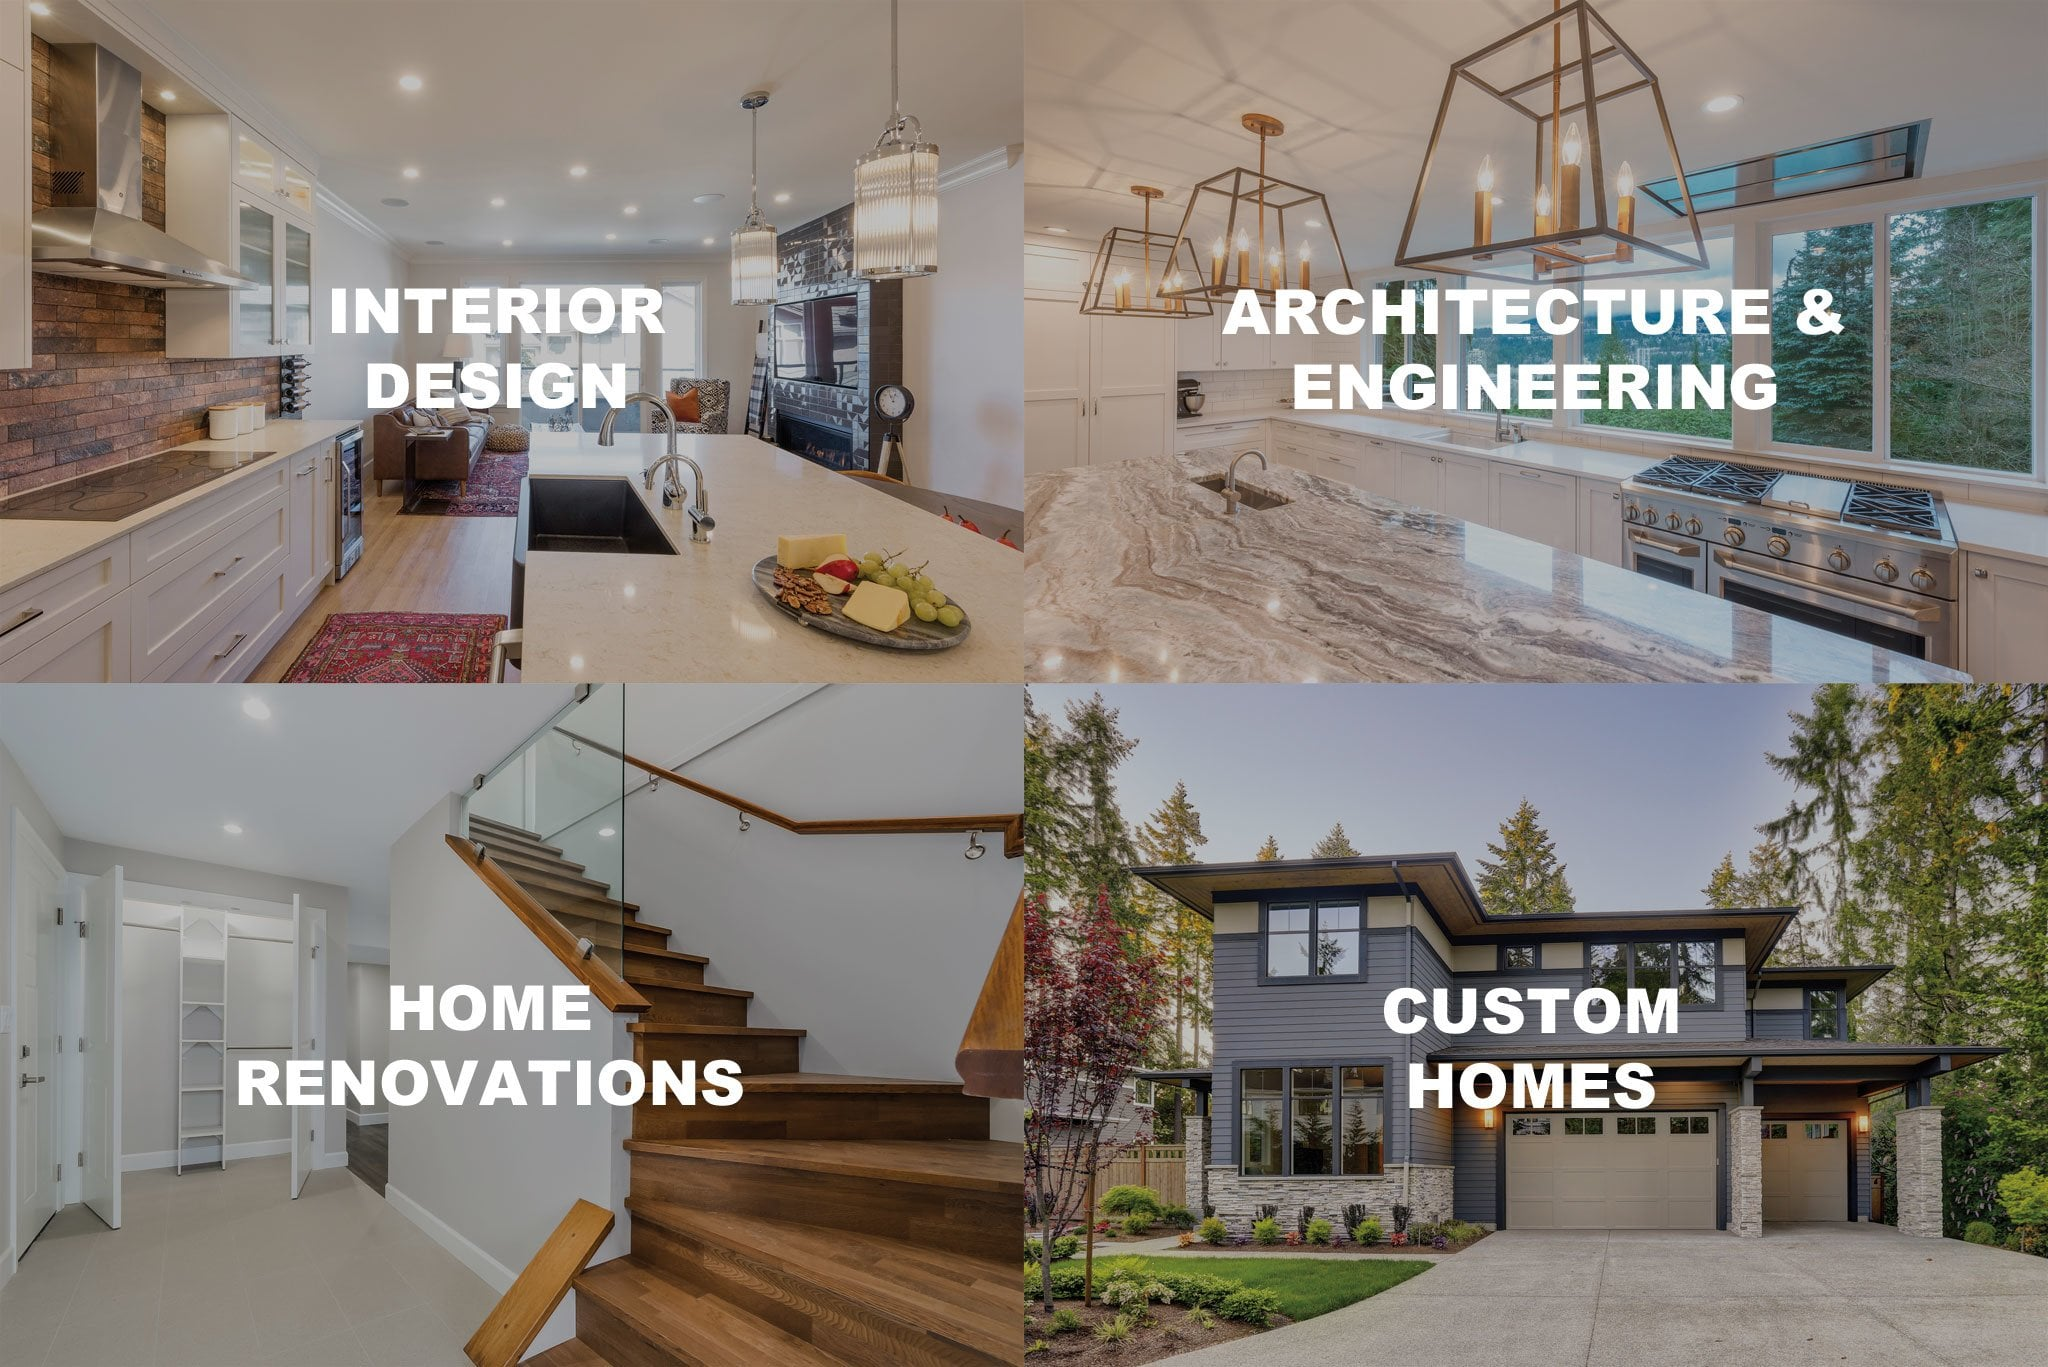 Interior Design | Architecture & Engineering | Home Renovations | Custom Homes